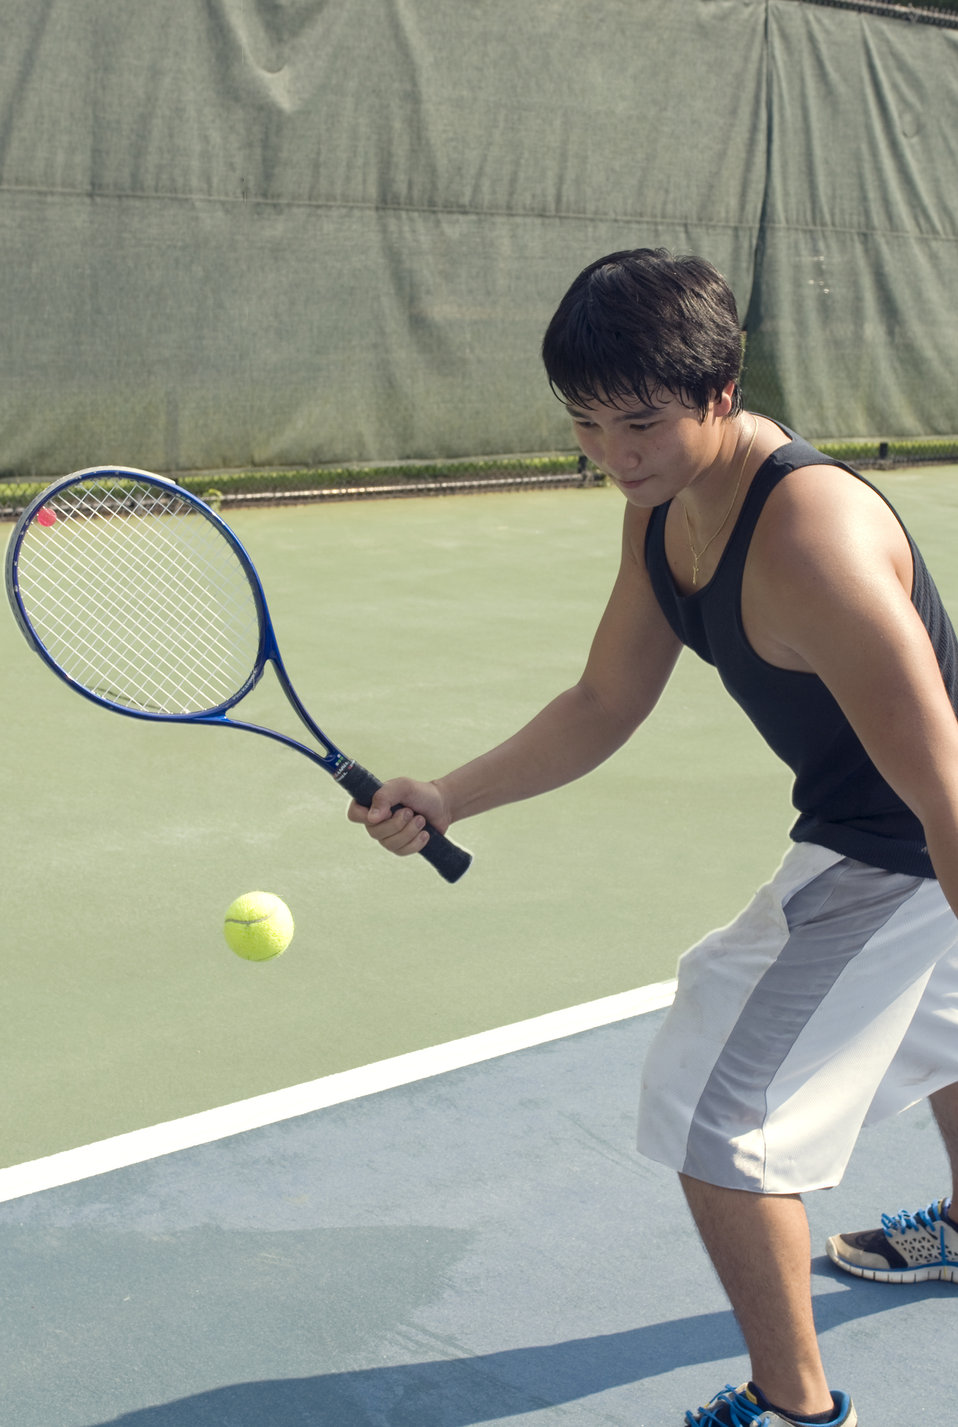 Right hand holding a tennis racket, this young man was playing a game of tennis on the court. Wearing a darkly-colored tank top, loose-fitti